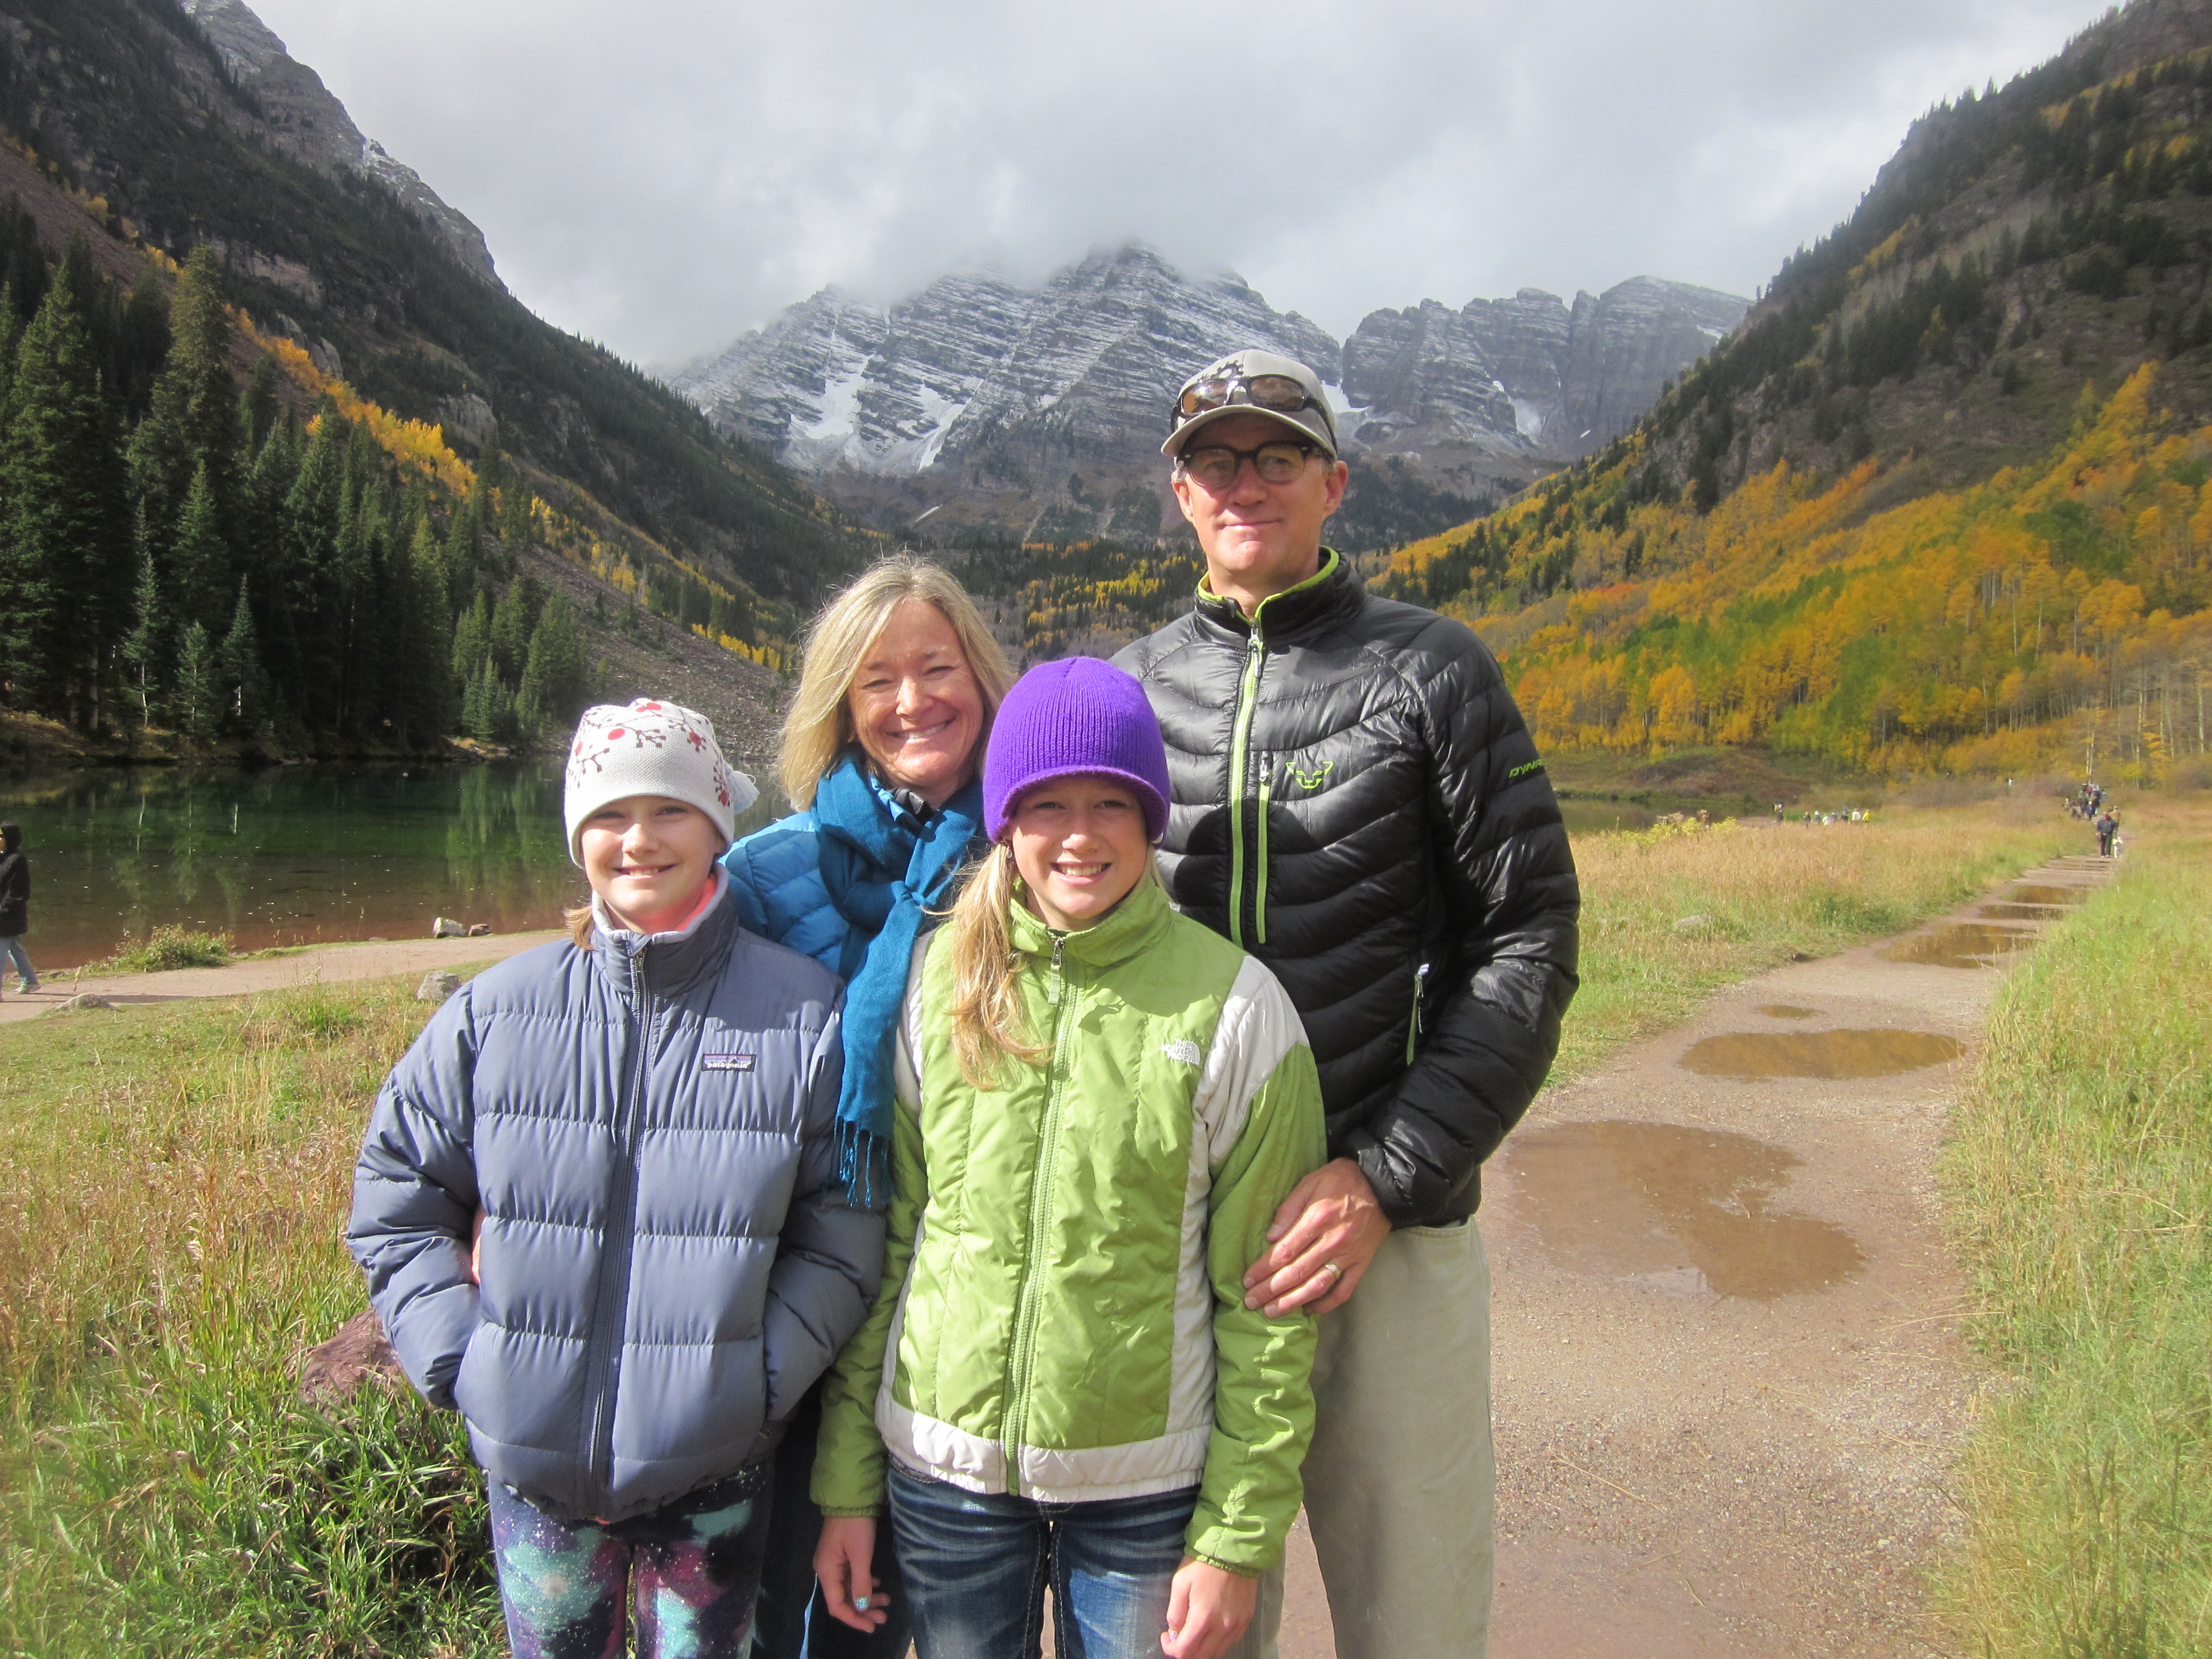 My health concerns were proven  unnecessary. The Places lead an outdoor lifestyle. This Summer Emma and her Dad took a 4-day Hiking trip over Paiute Pass ((11,423-ft). Emma carried a 24-pound pack.